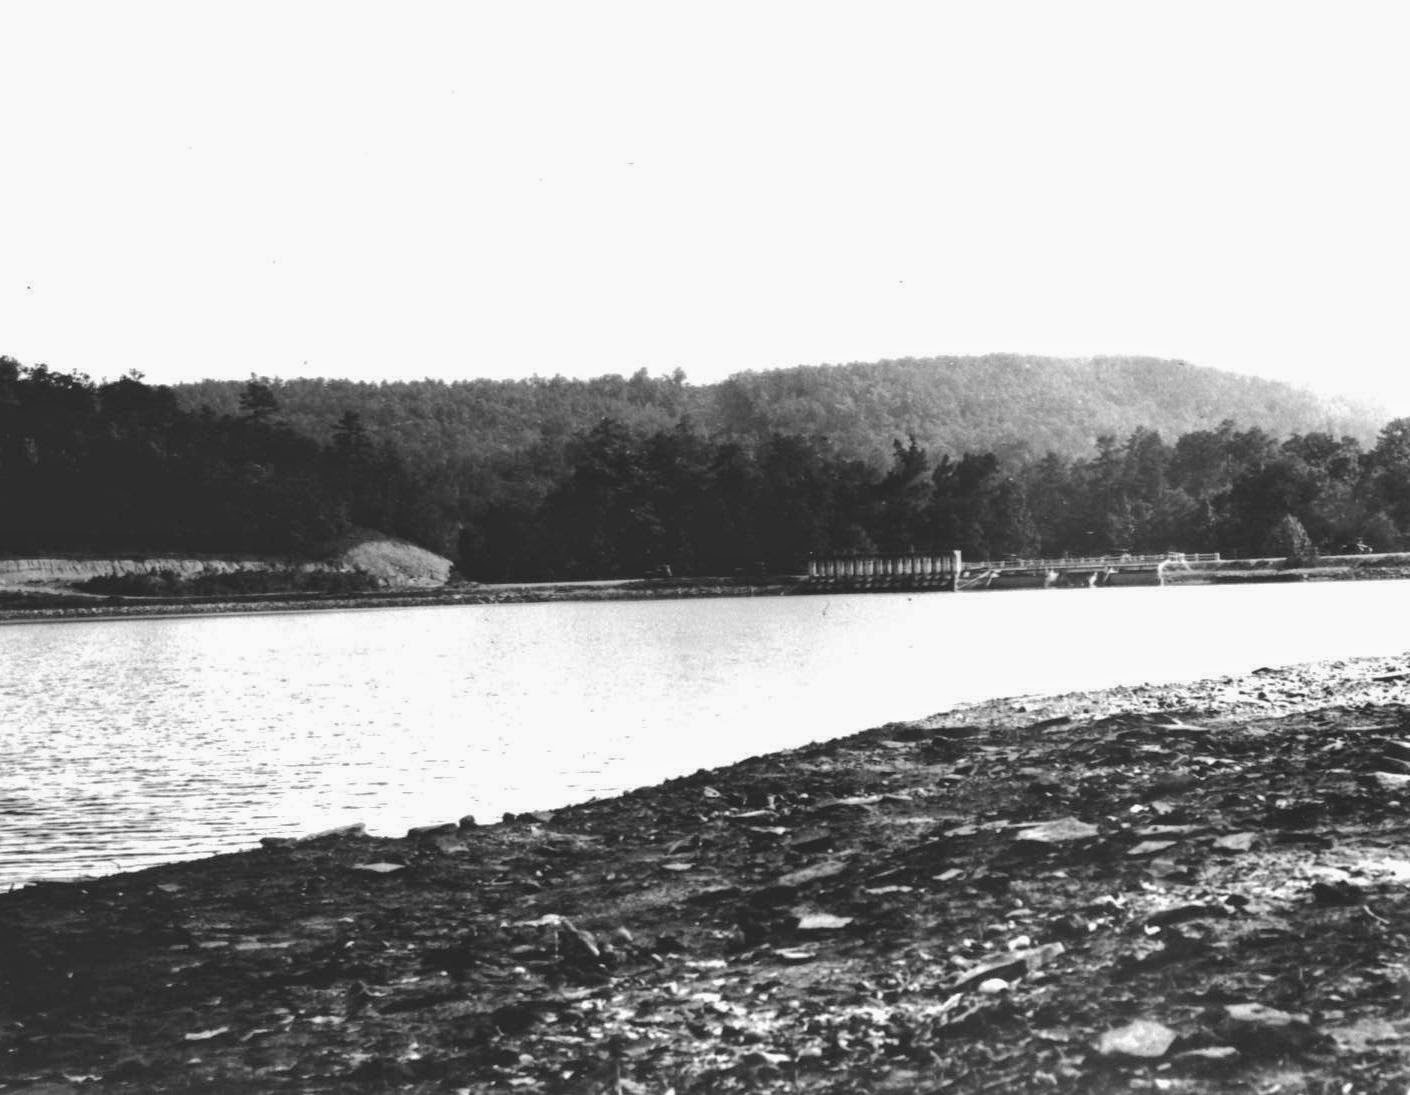 Homewood history hunt edgewood lake looking southwest towards the dam this photo is take from where greensprings crosses lakeshore today mightylinksfo